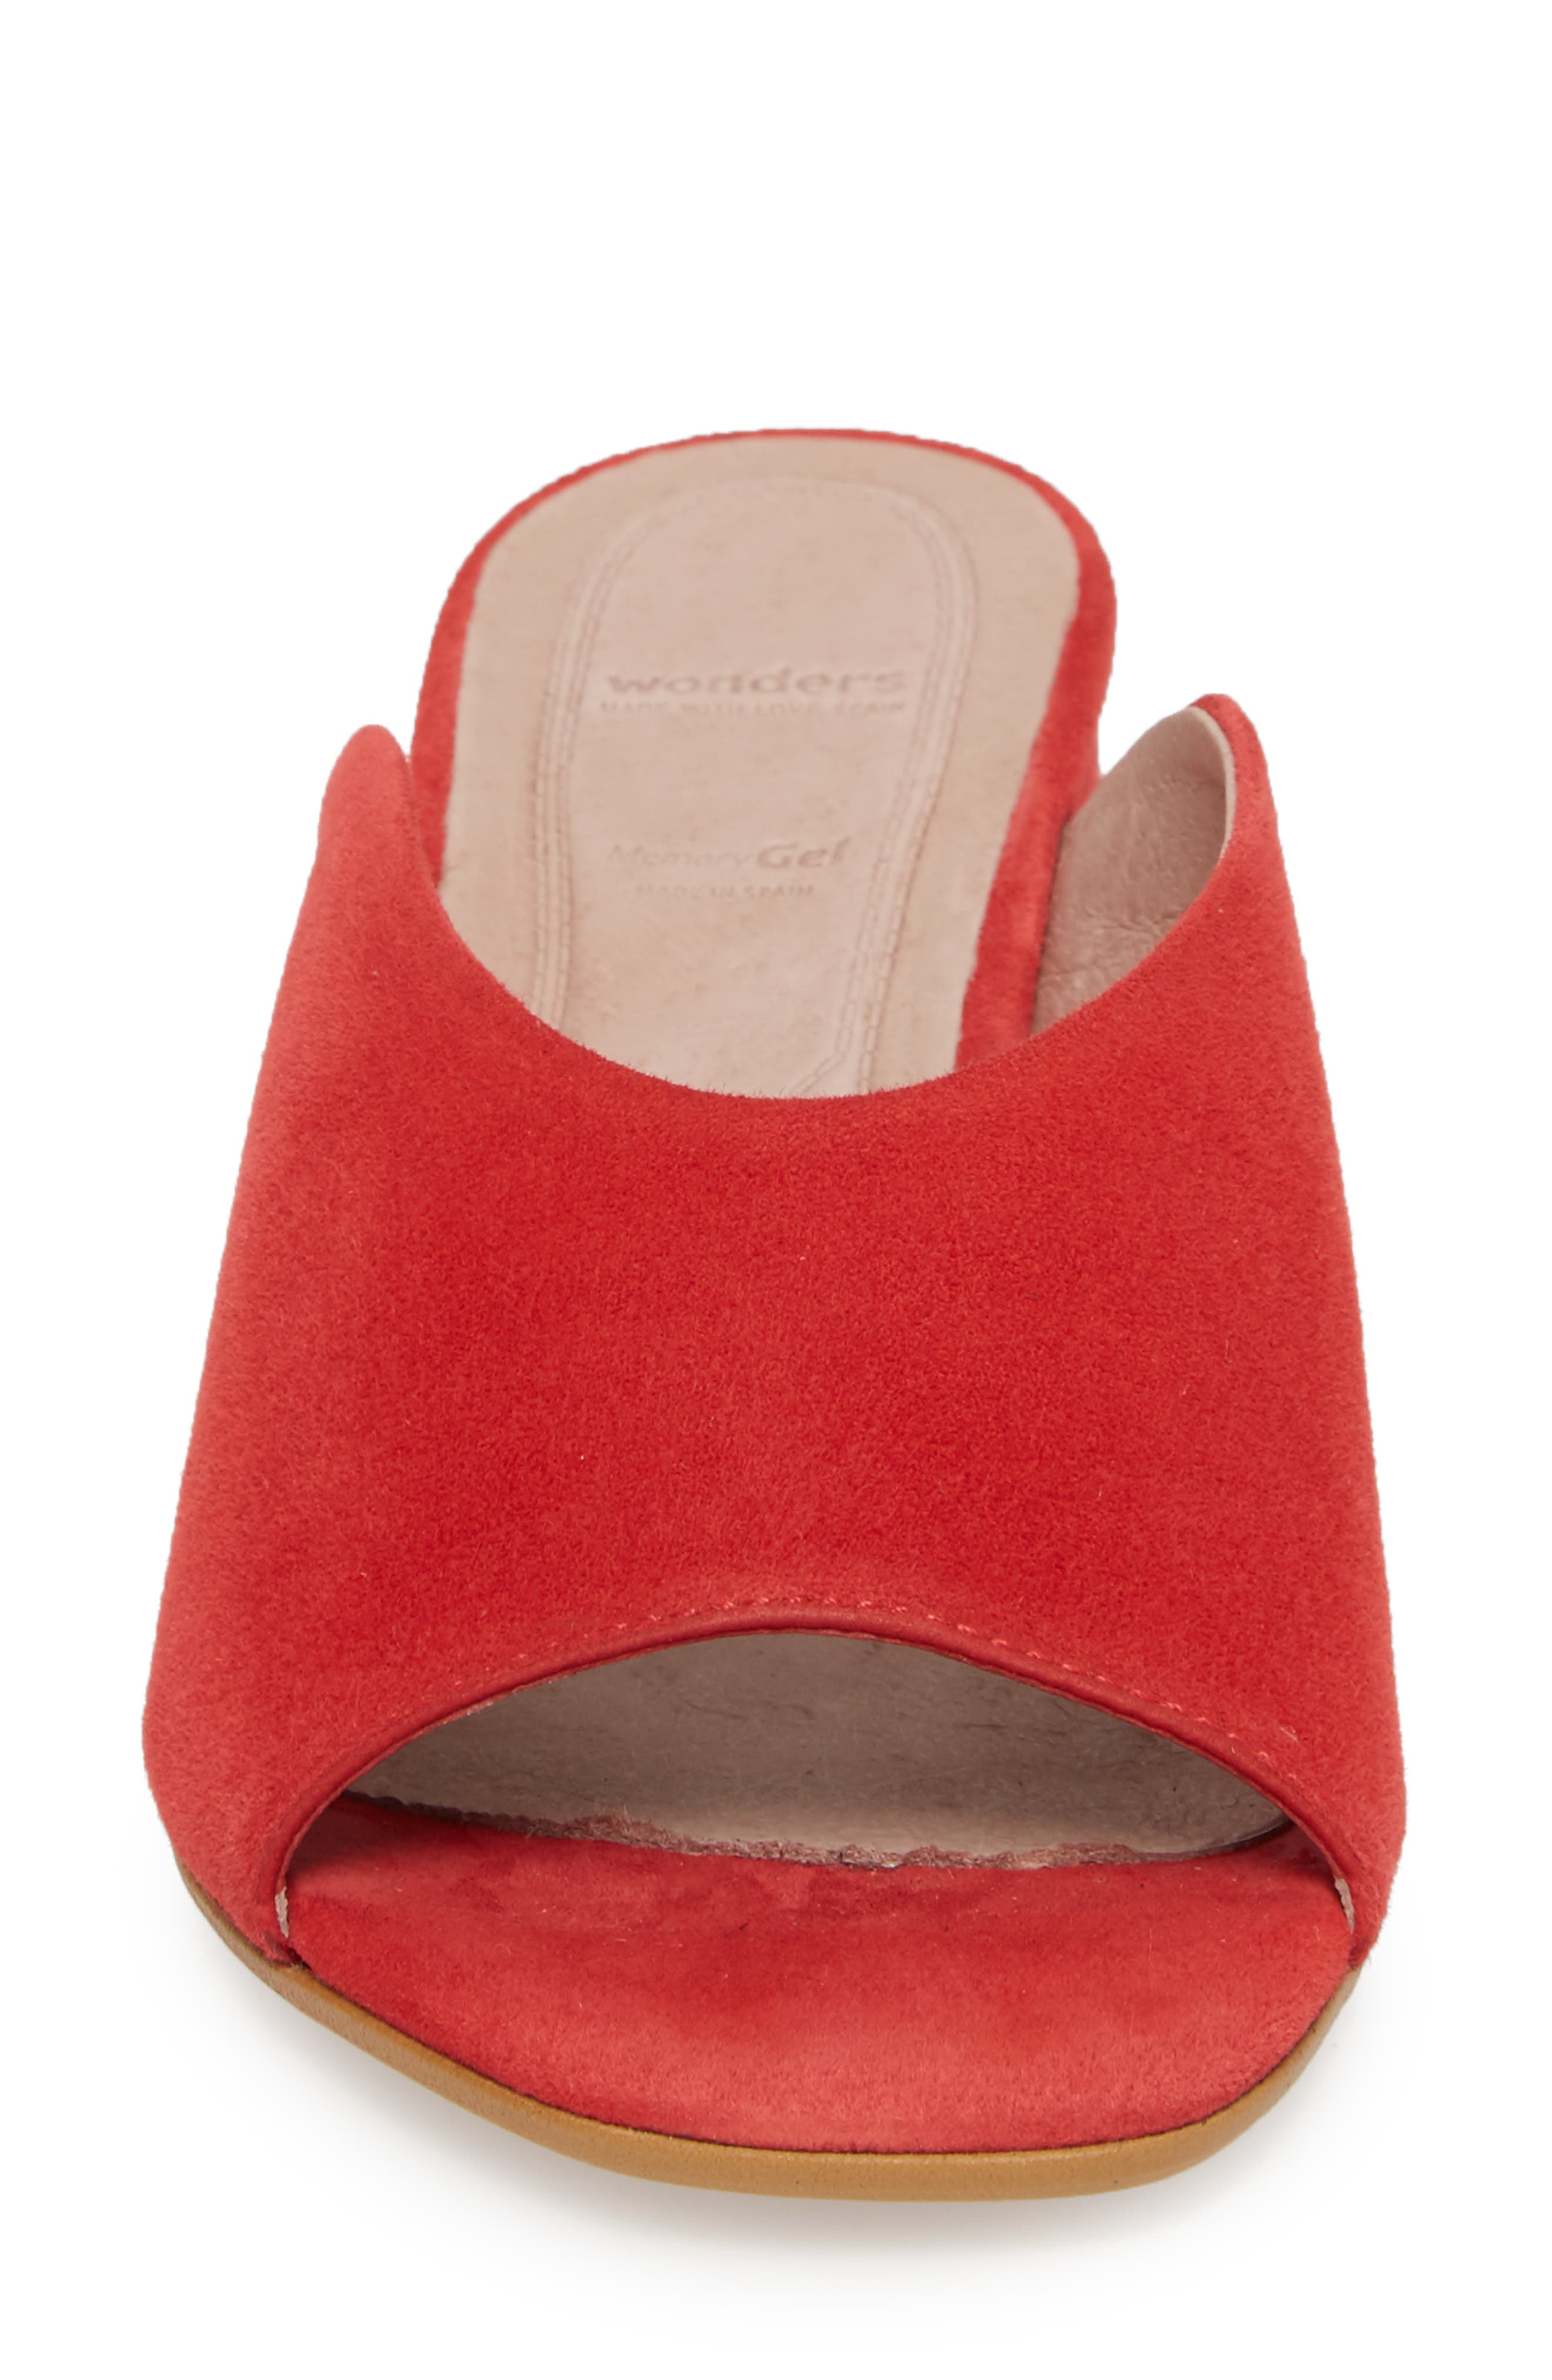 F-6127 Mule,                             Alternate thumbnail 4, color,                             Red Suede